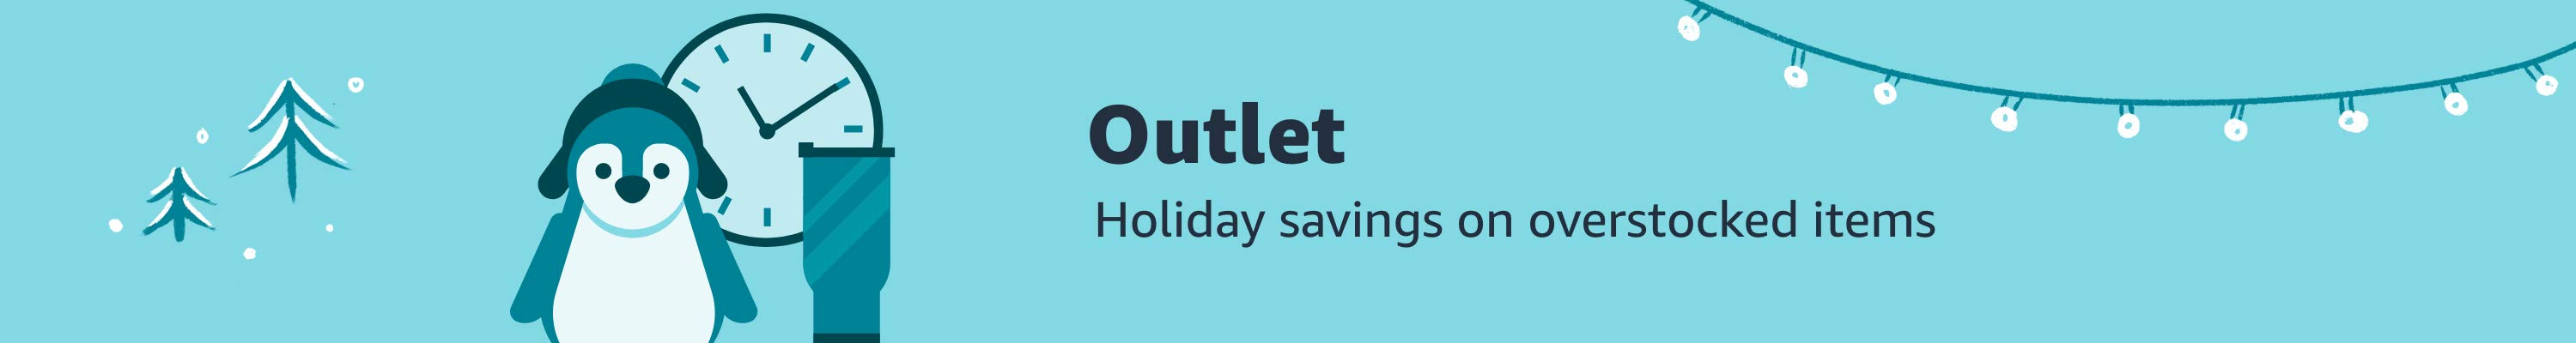 UK Outlet: Holiday savings on overstocked items